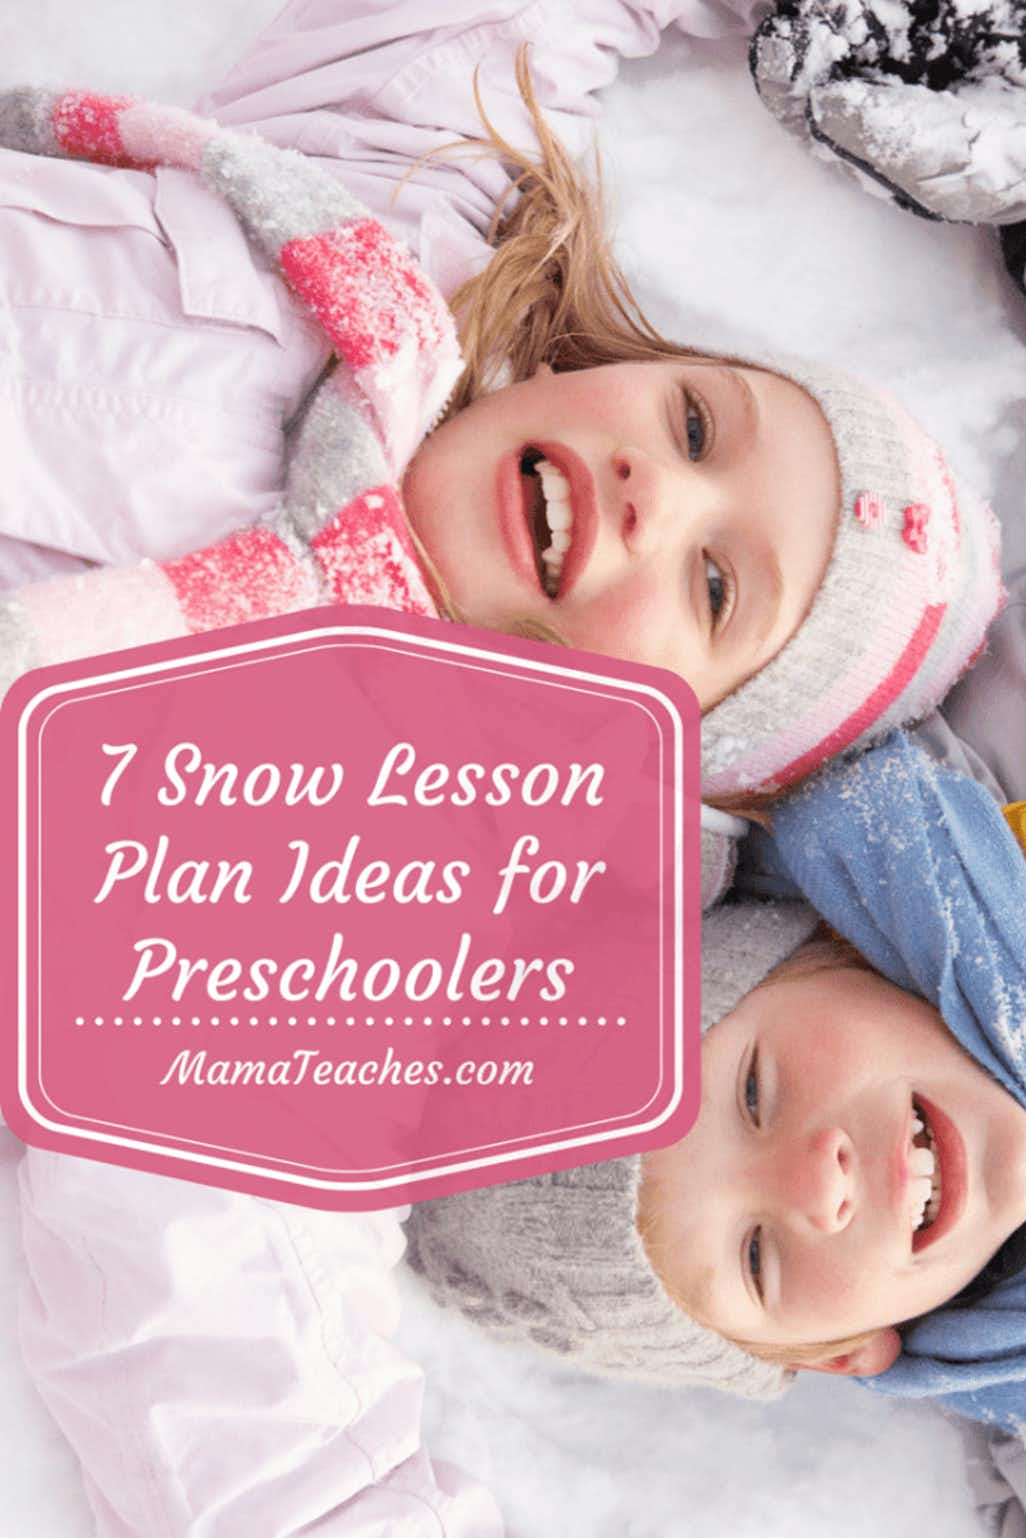 7 Snow Lesson Plan Ideas for Preschool